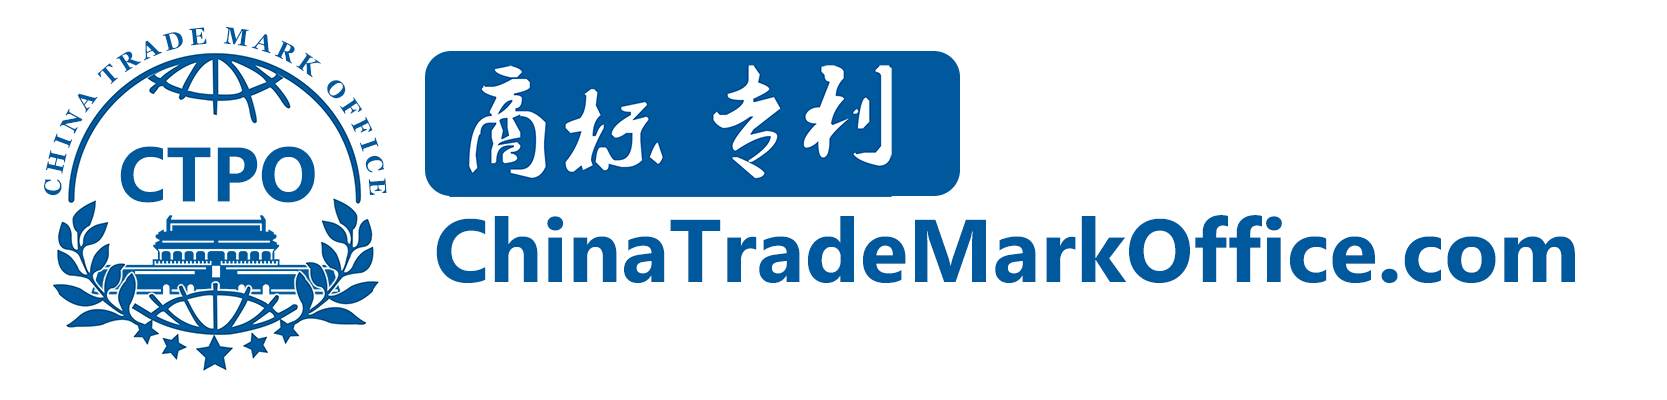 China Trade Mark Office